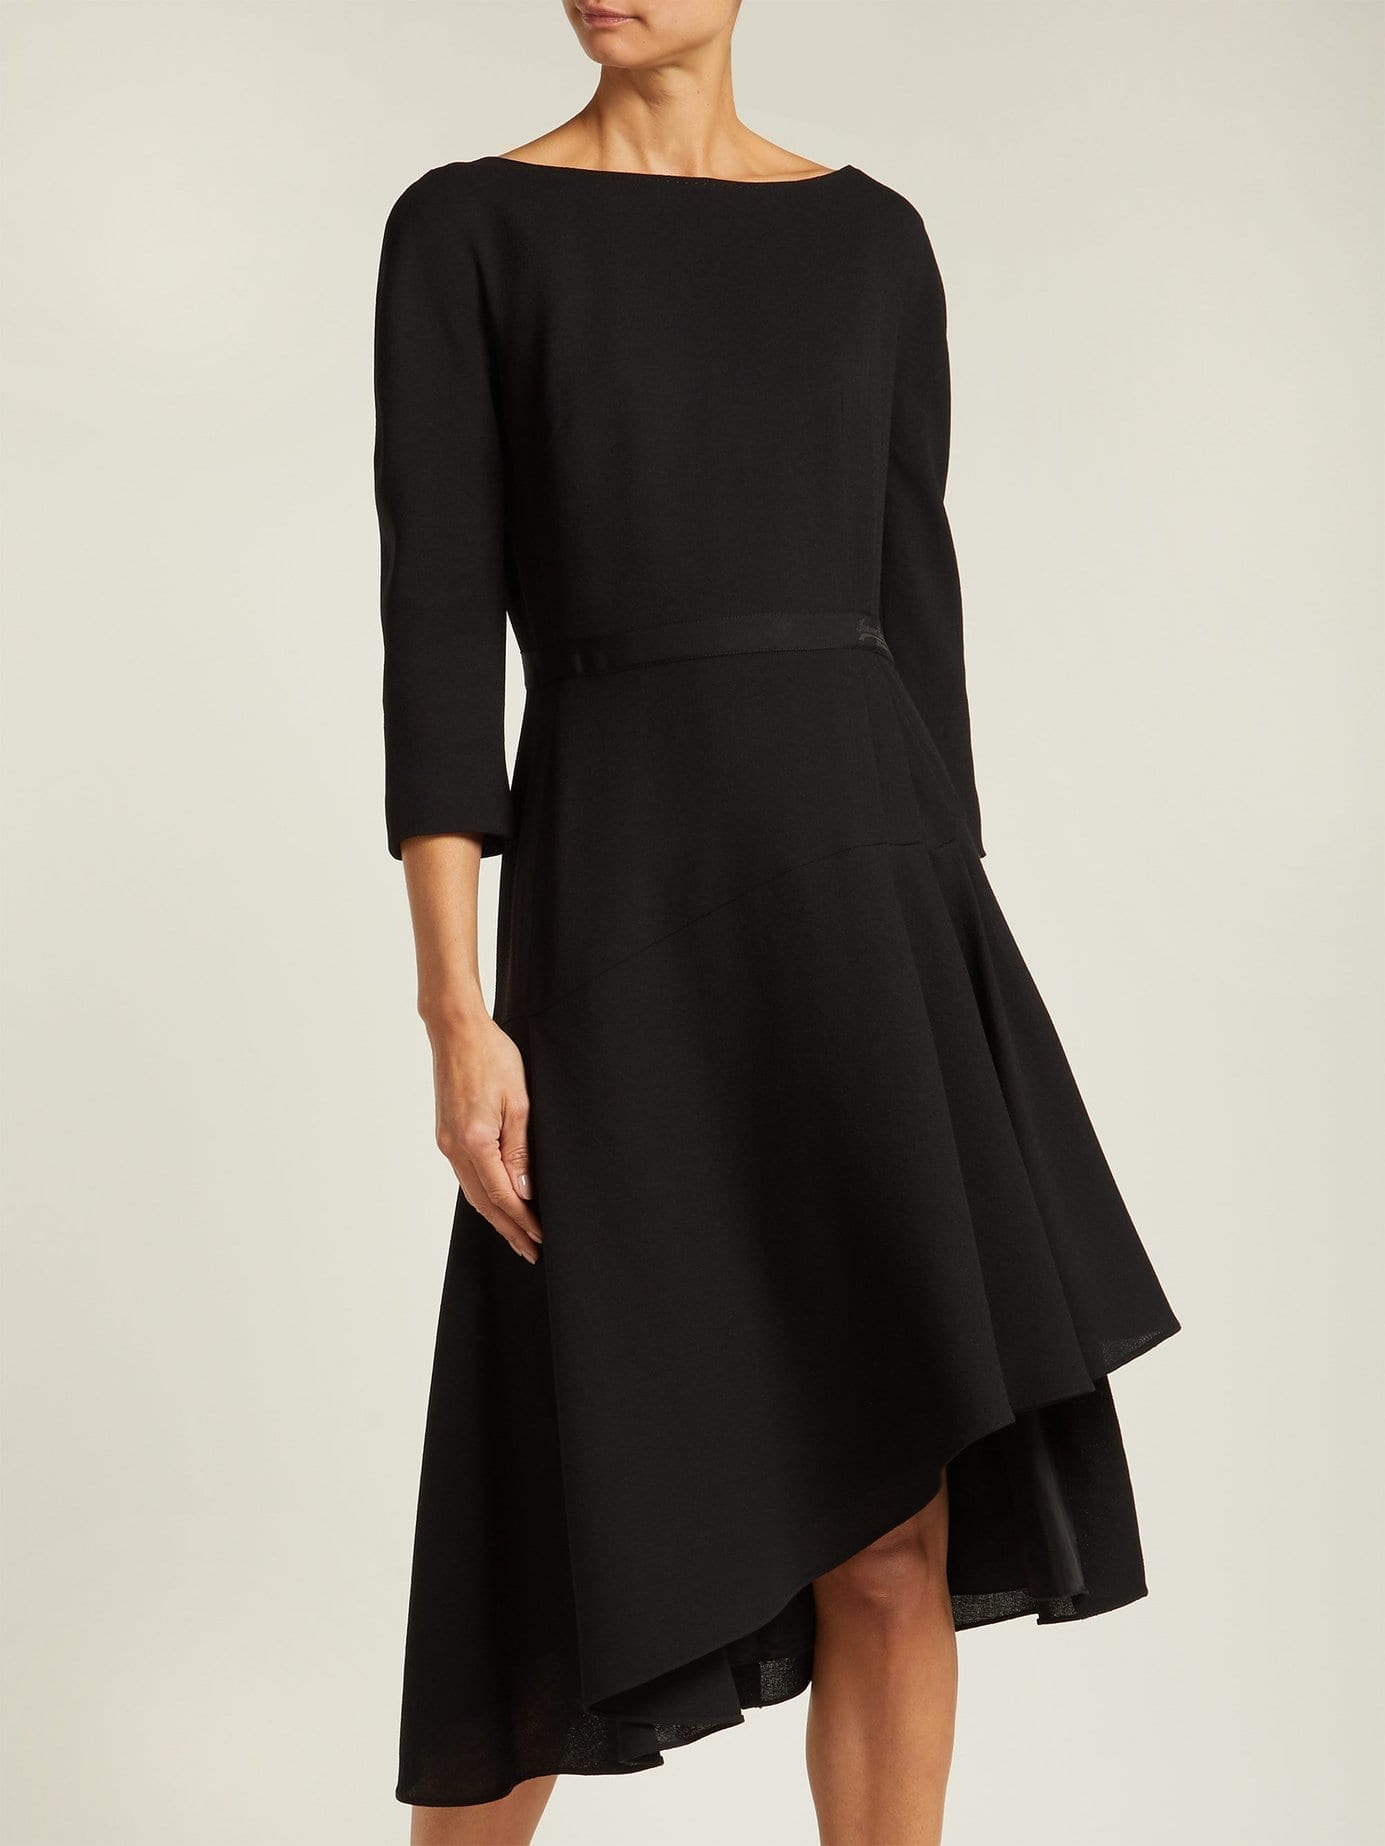 LANVIN Asymmetric Pleated Wool Midi Black Dress